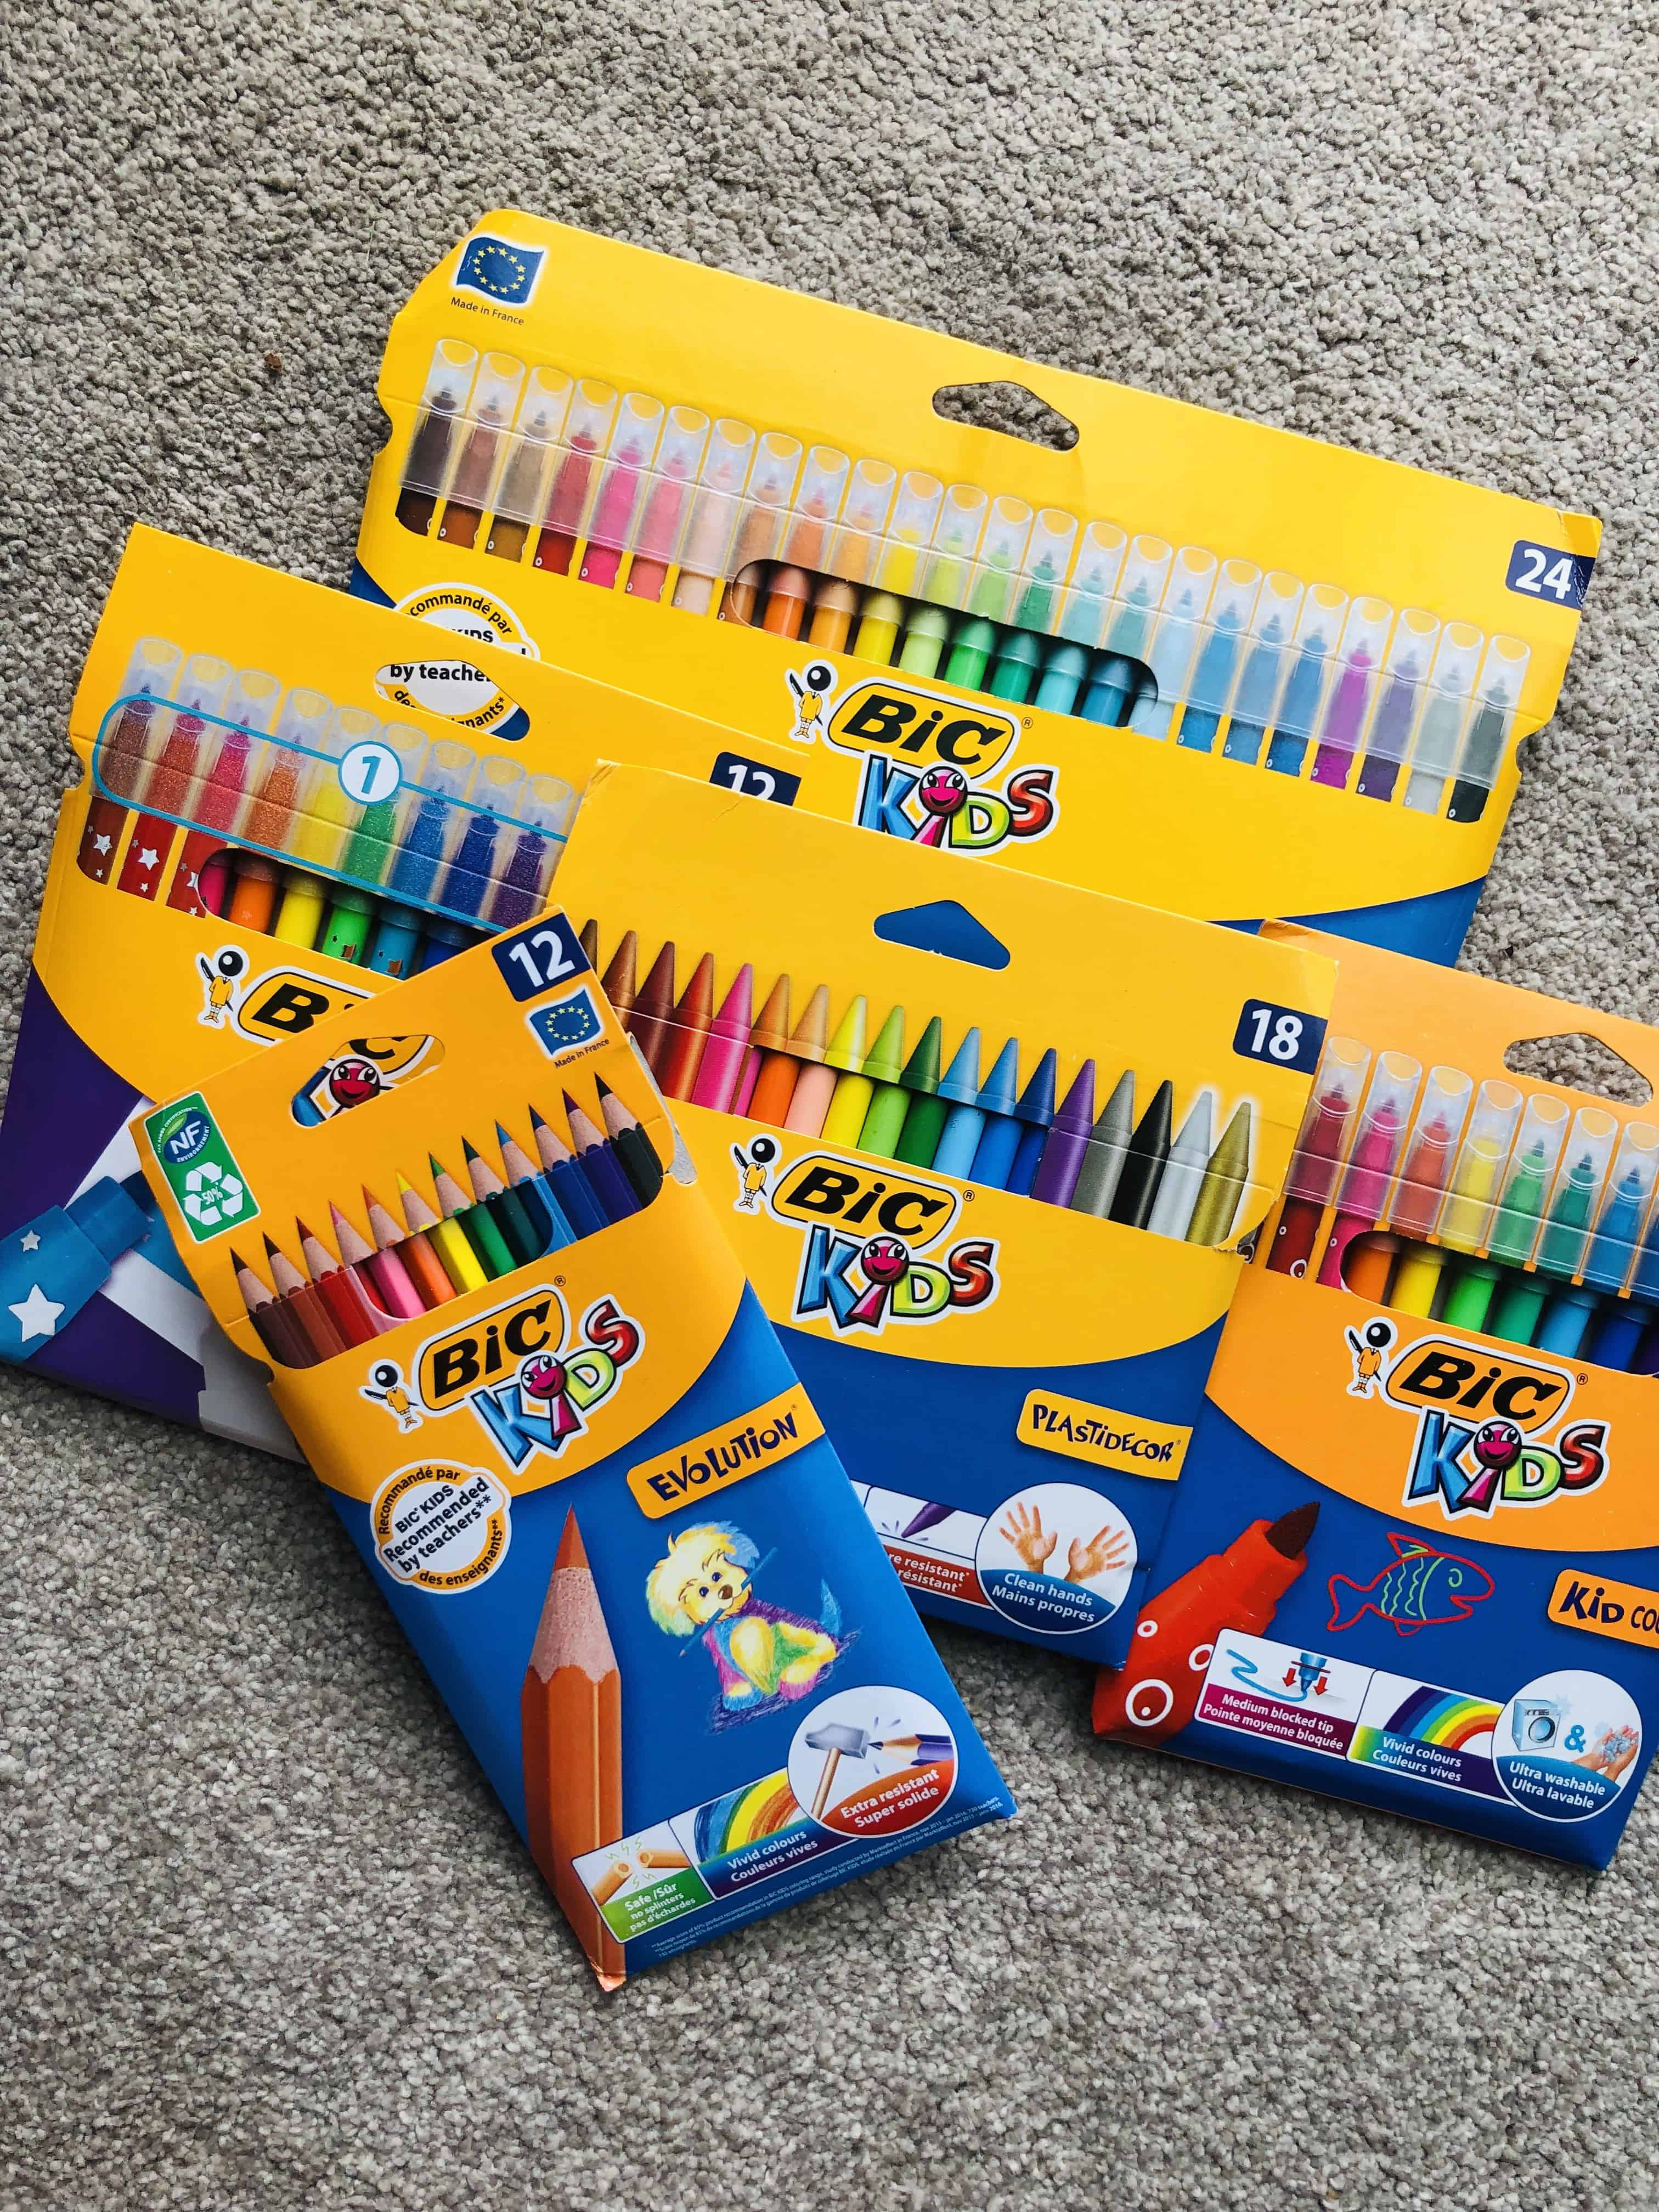 Bic kids young artist